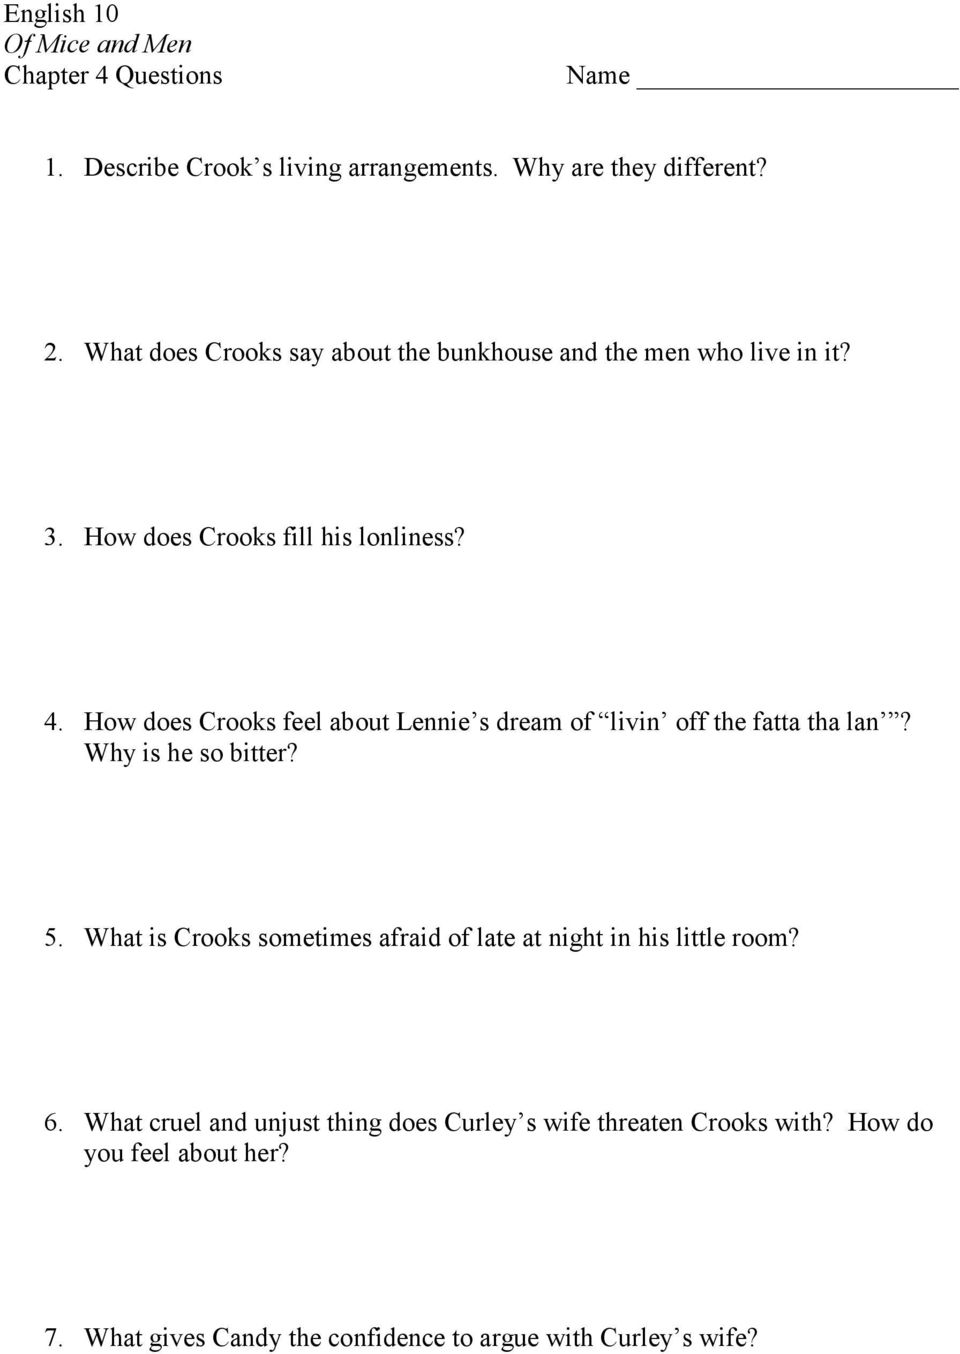 english of mice and men chapter questions pts list how does crooks feel about lennie s dream of livin off the fatta tha lan